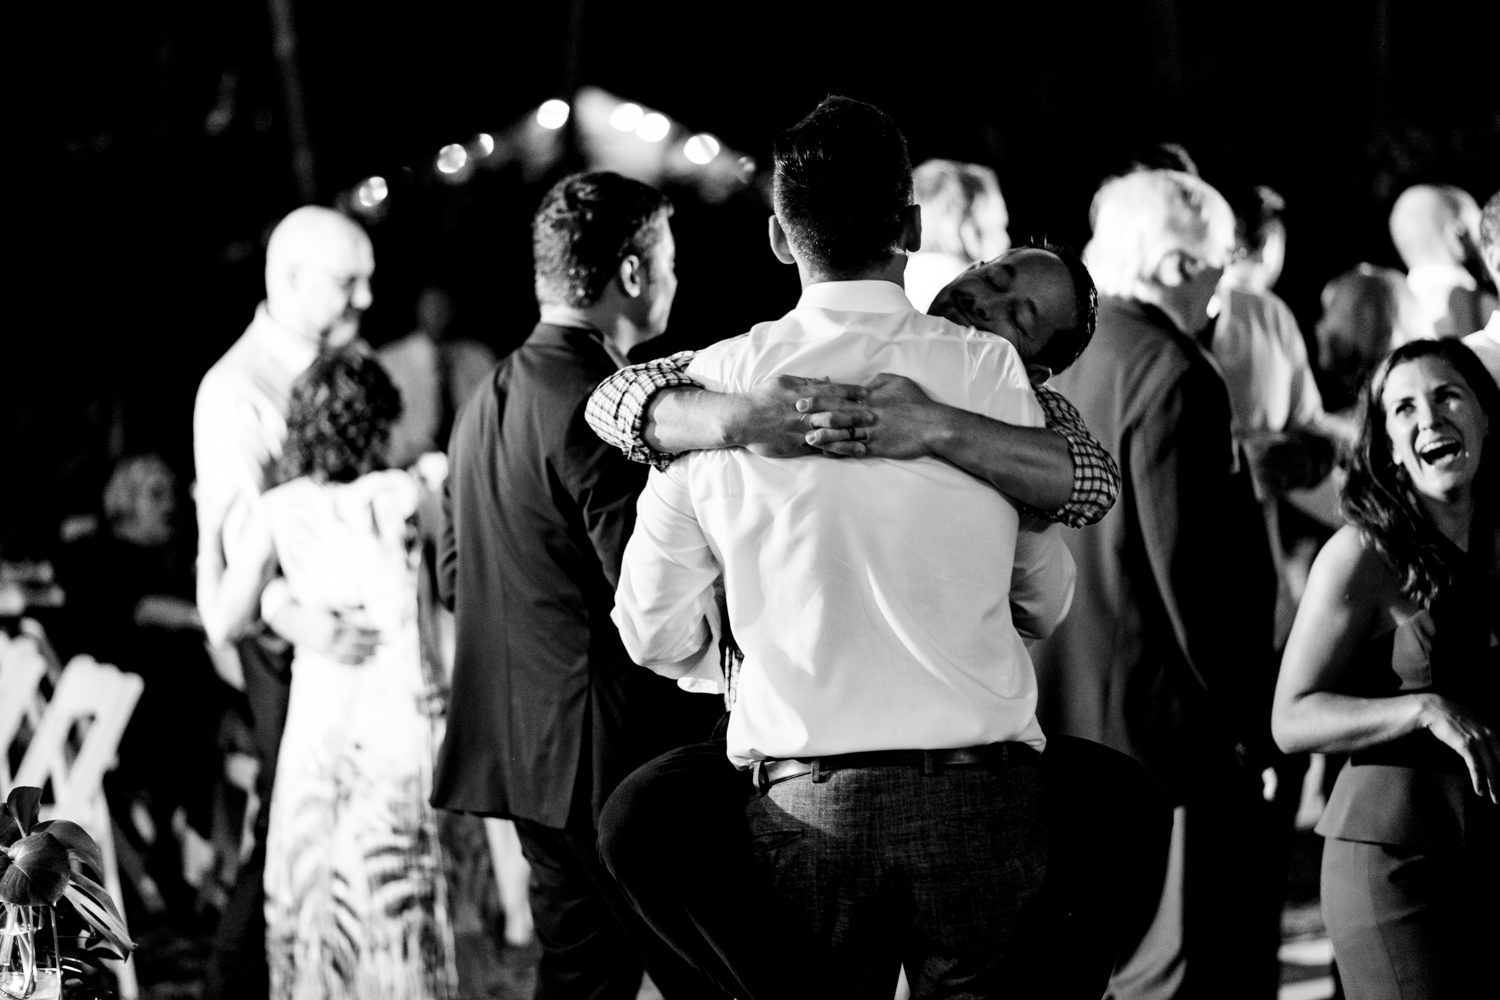 People dancing at a wedding reception at hemingway house in key west